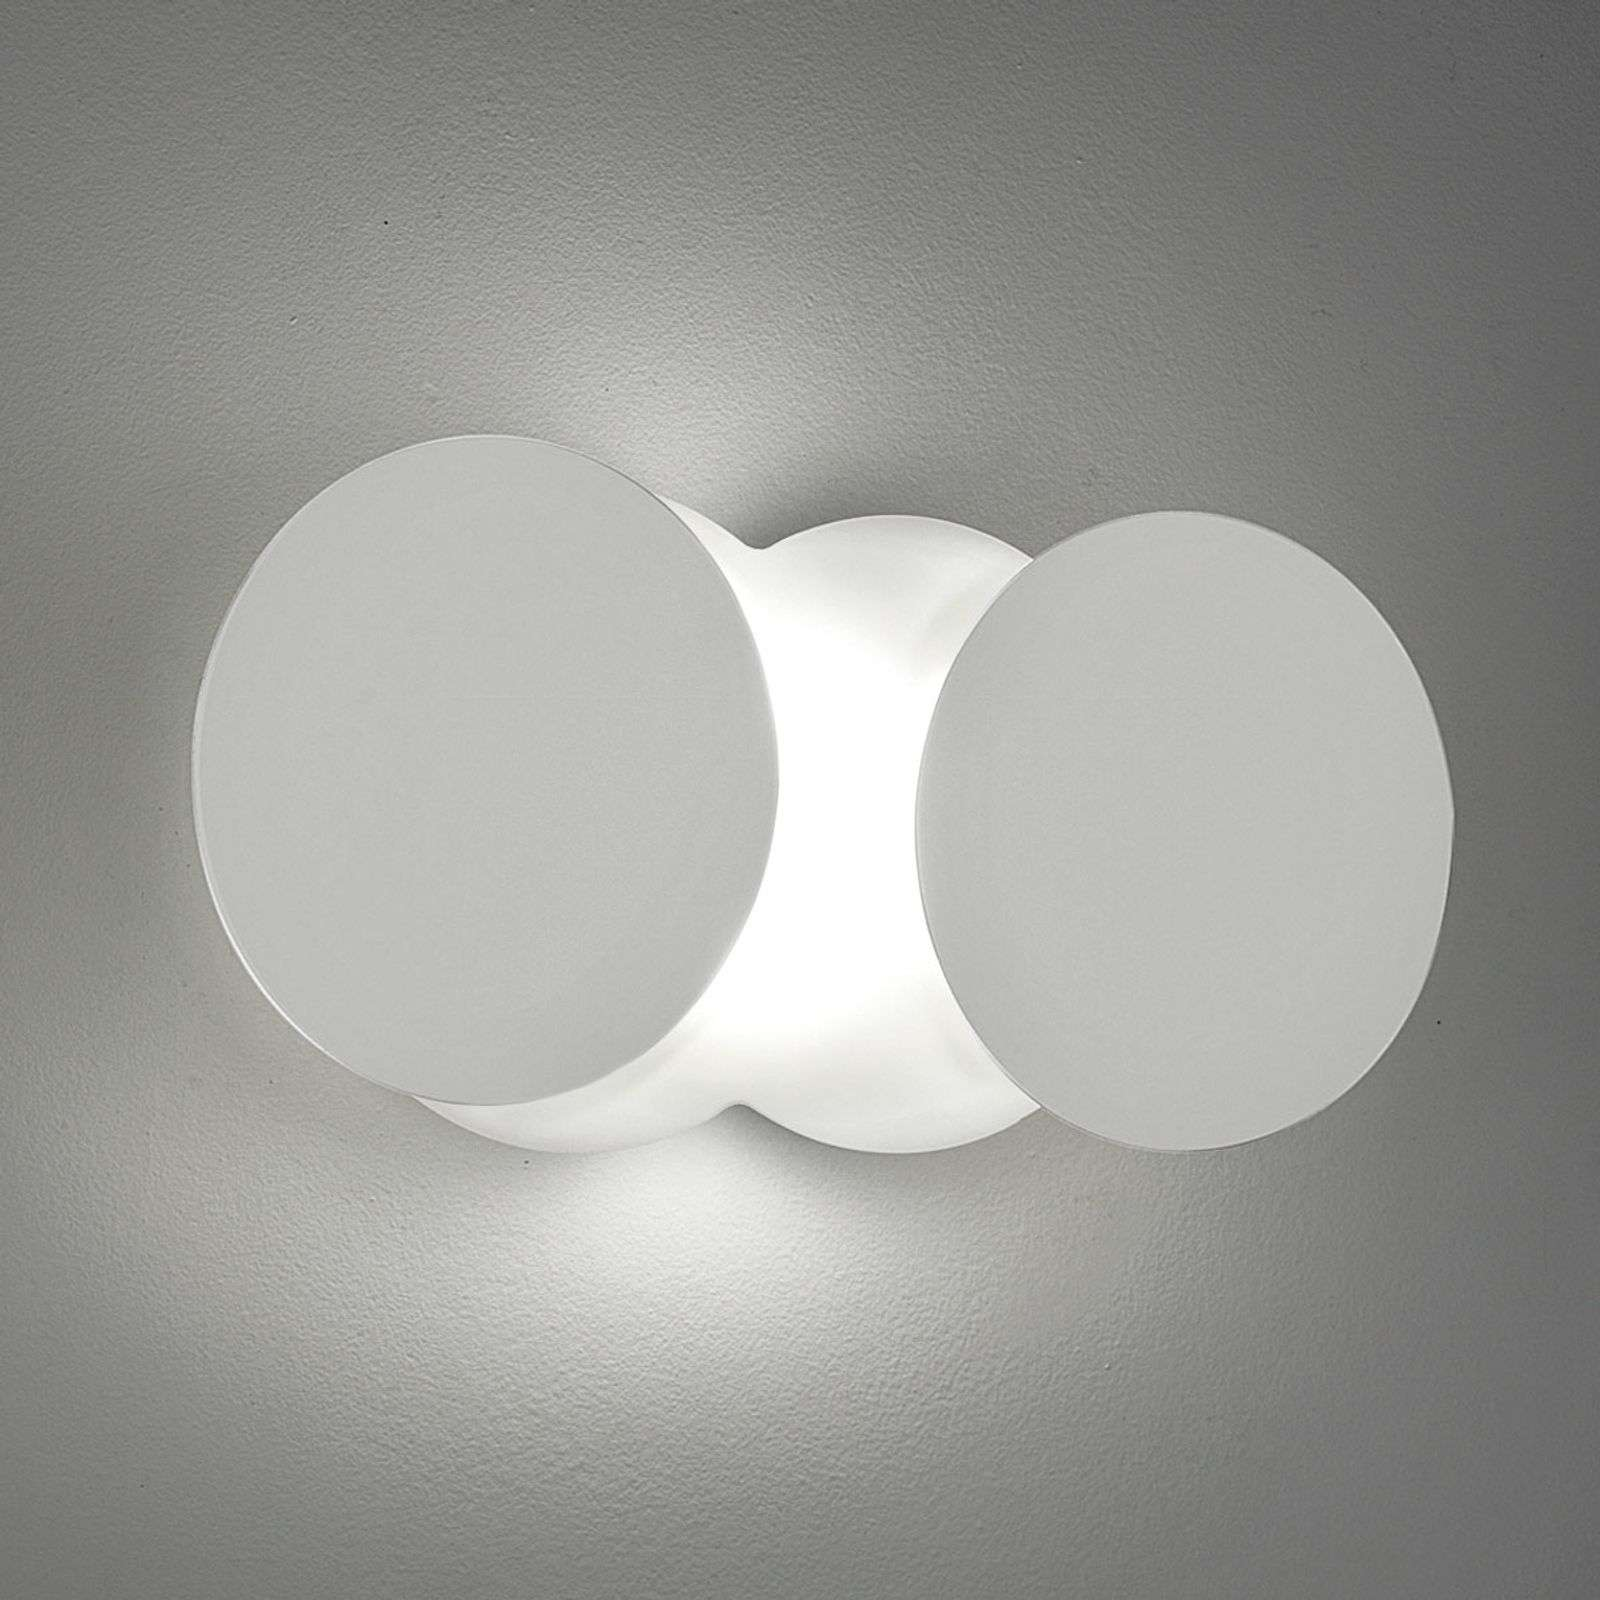 Applique LED transformable Nuvola, blanche